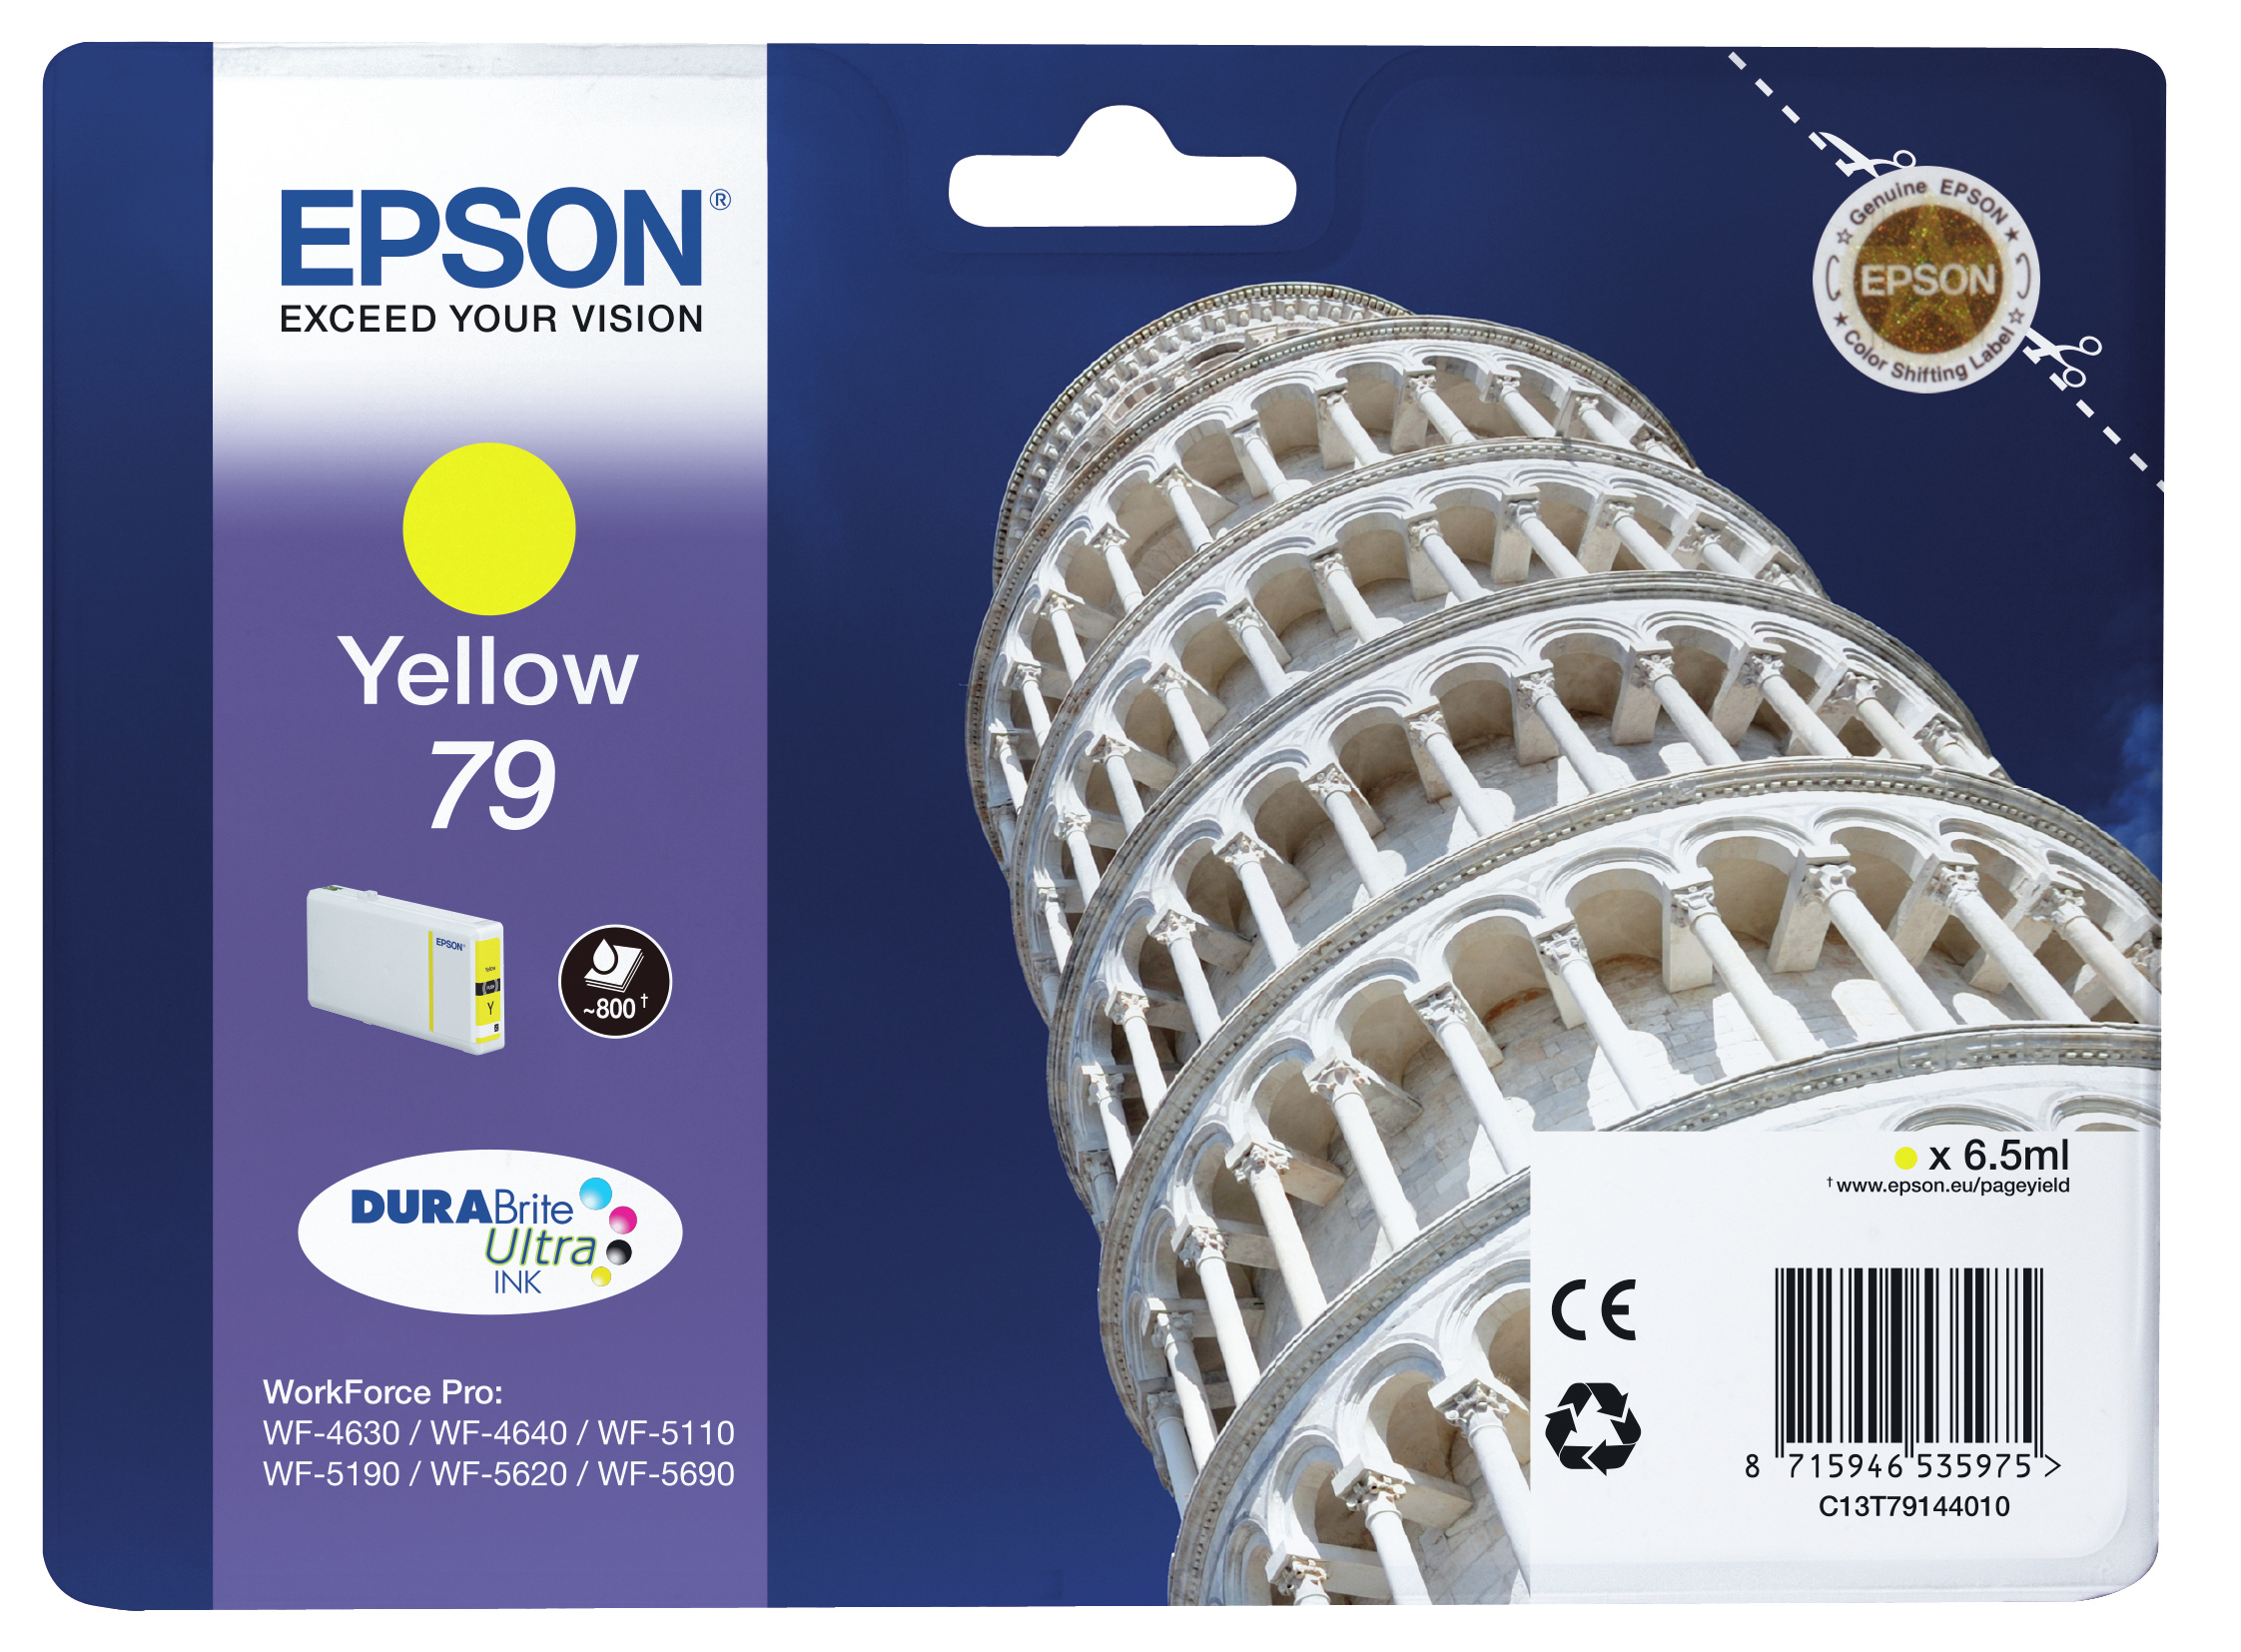 C13t79144010 epson Wf4630/5110/5690 Yell Ink 6.5 - AD01